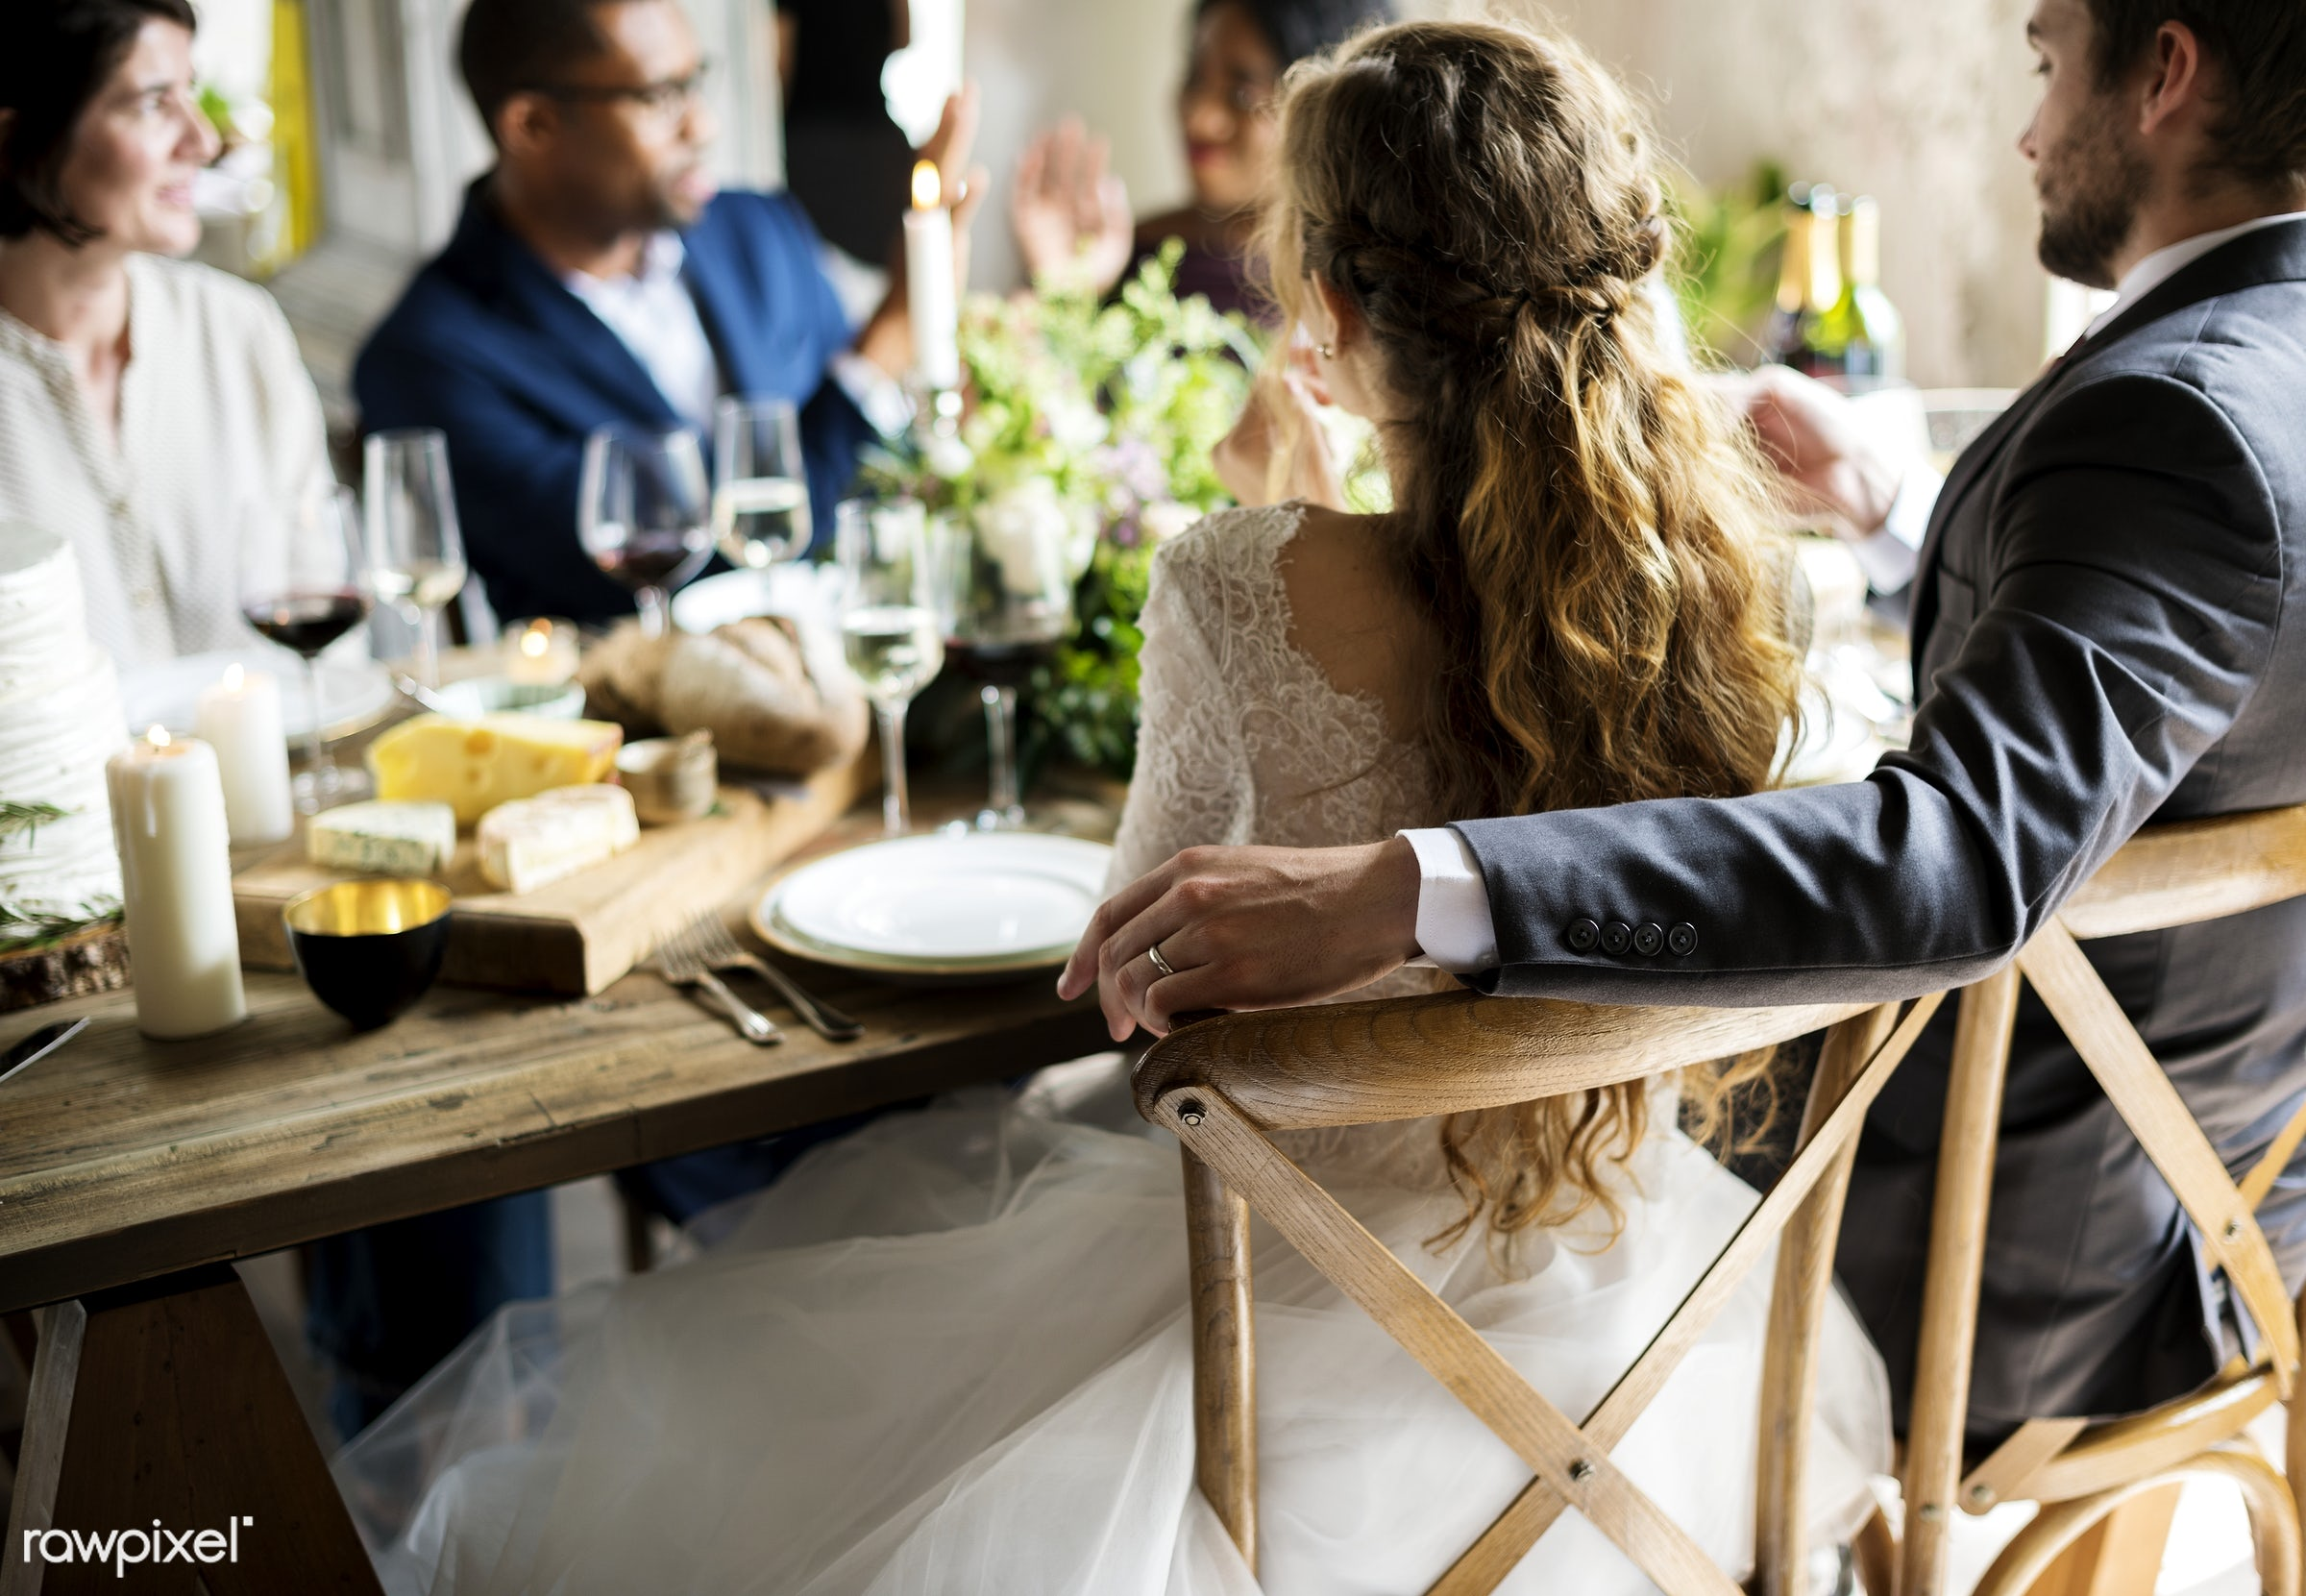 Bride and Groom Having Meal with Friends at Wedding Reception - wedding, groom, adult, bridal, bride, celebrate, celebration...